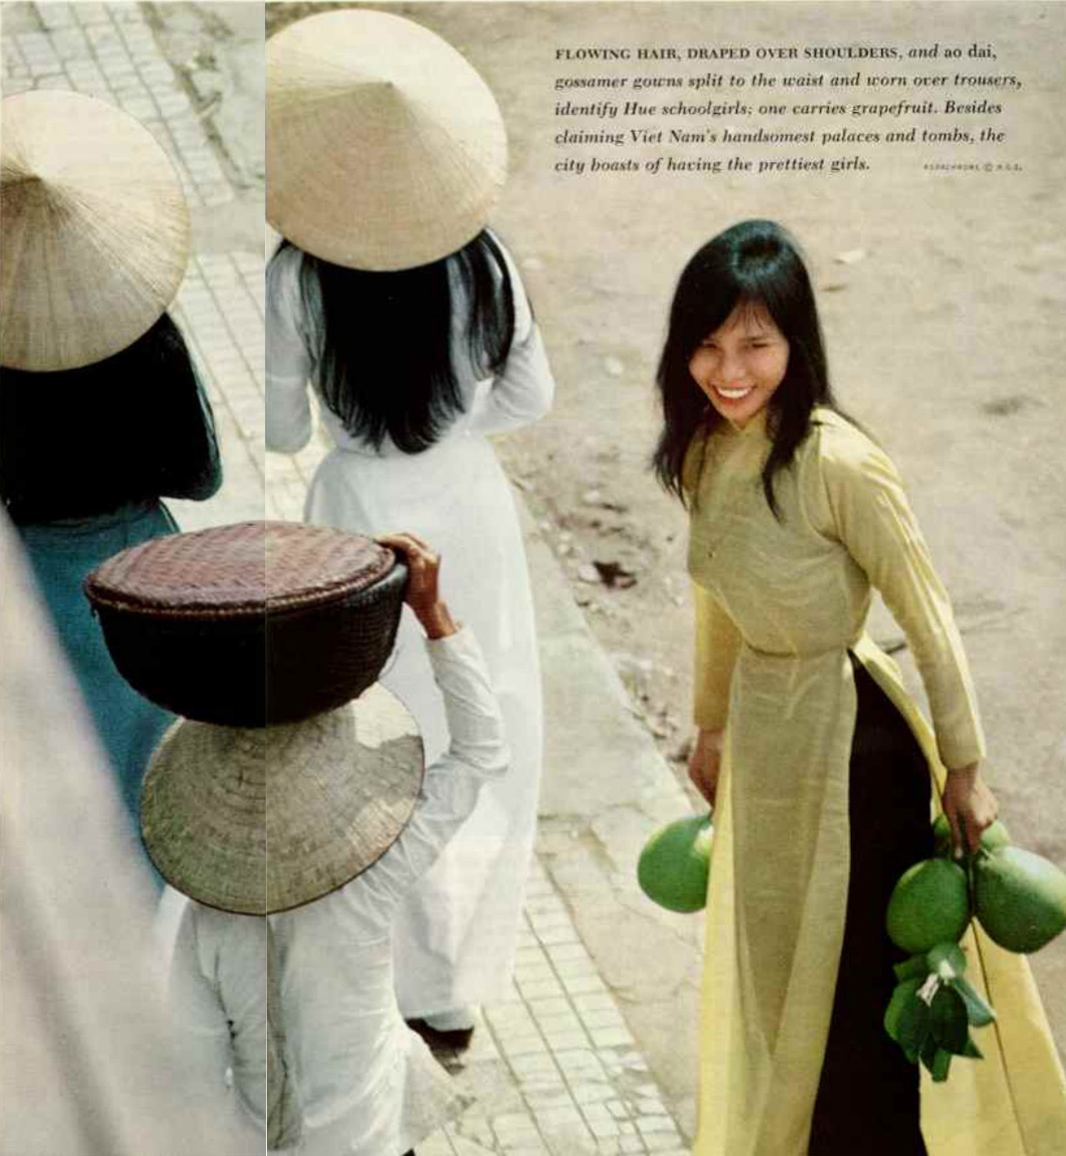 Anh doc: Dat va nguoi xu Hue tren tap chi National Geographic 1967-Hinh-5